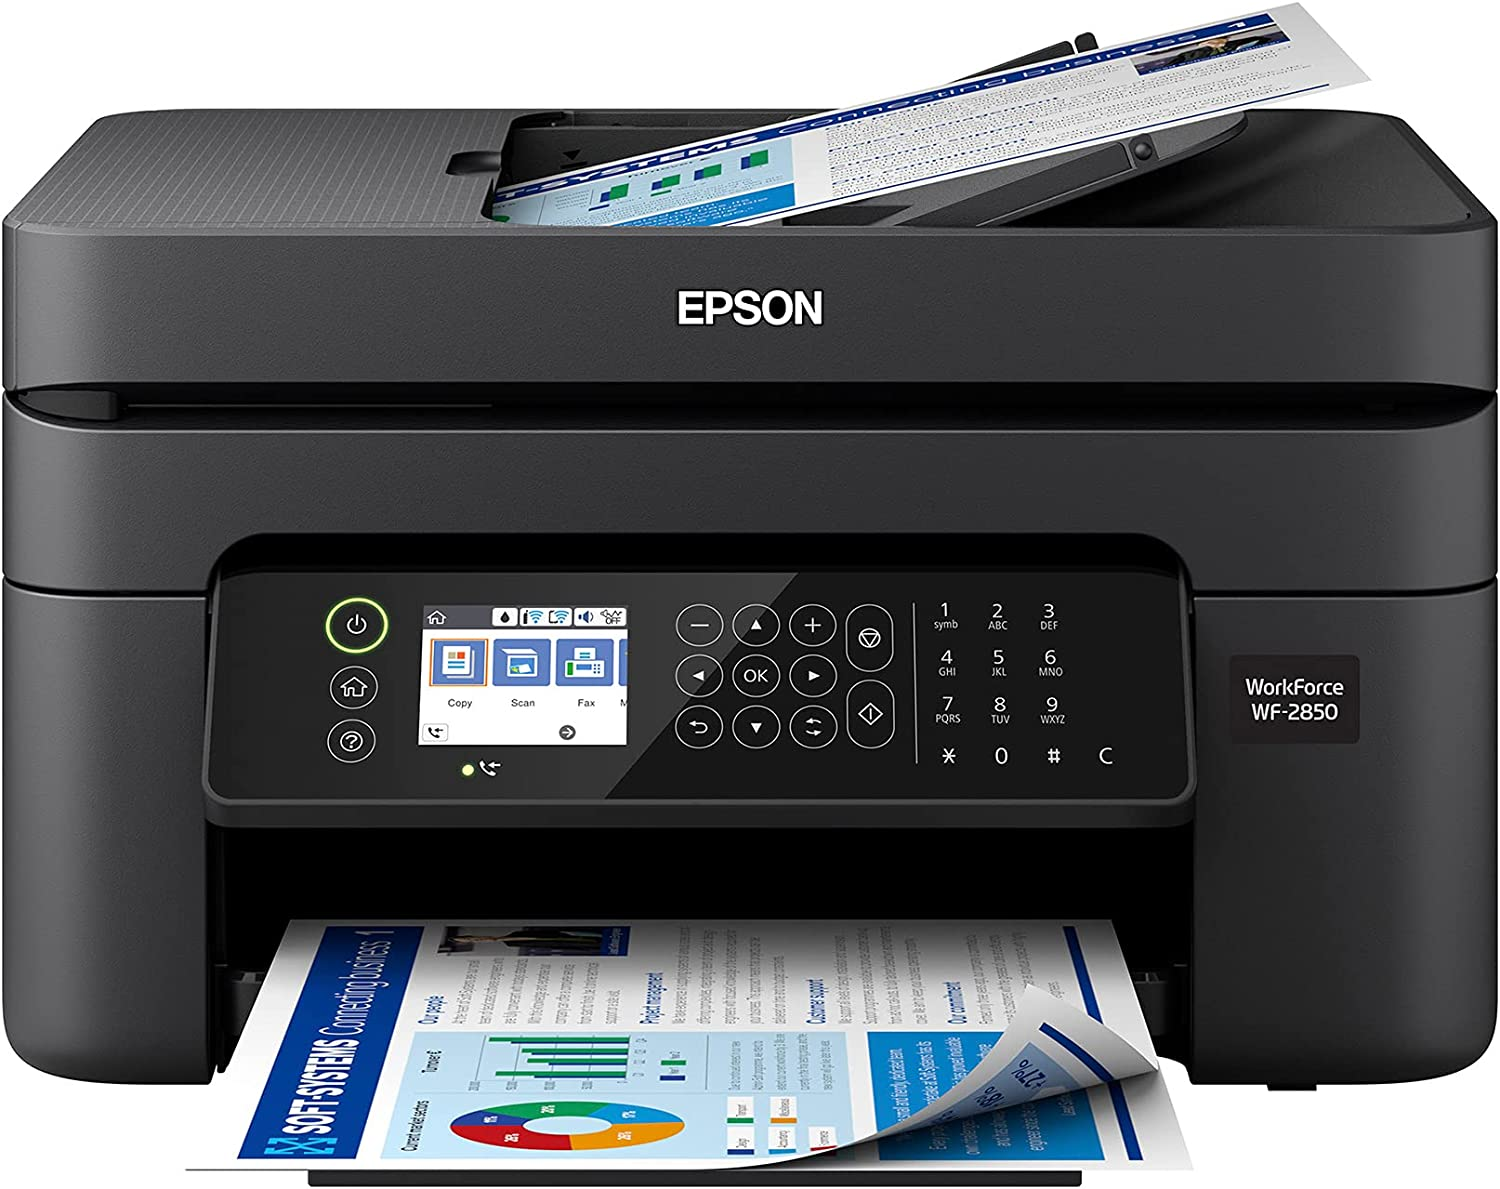 Epson Premium Workforce WF 28 Series All-in-One Color Inkjet Printer I Print Copy Scan Fax I Wireless I Mobile Printing I Auto 2-Sided Printing I 2.4